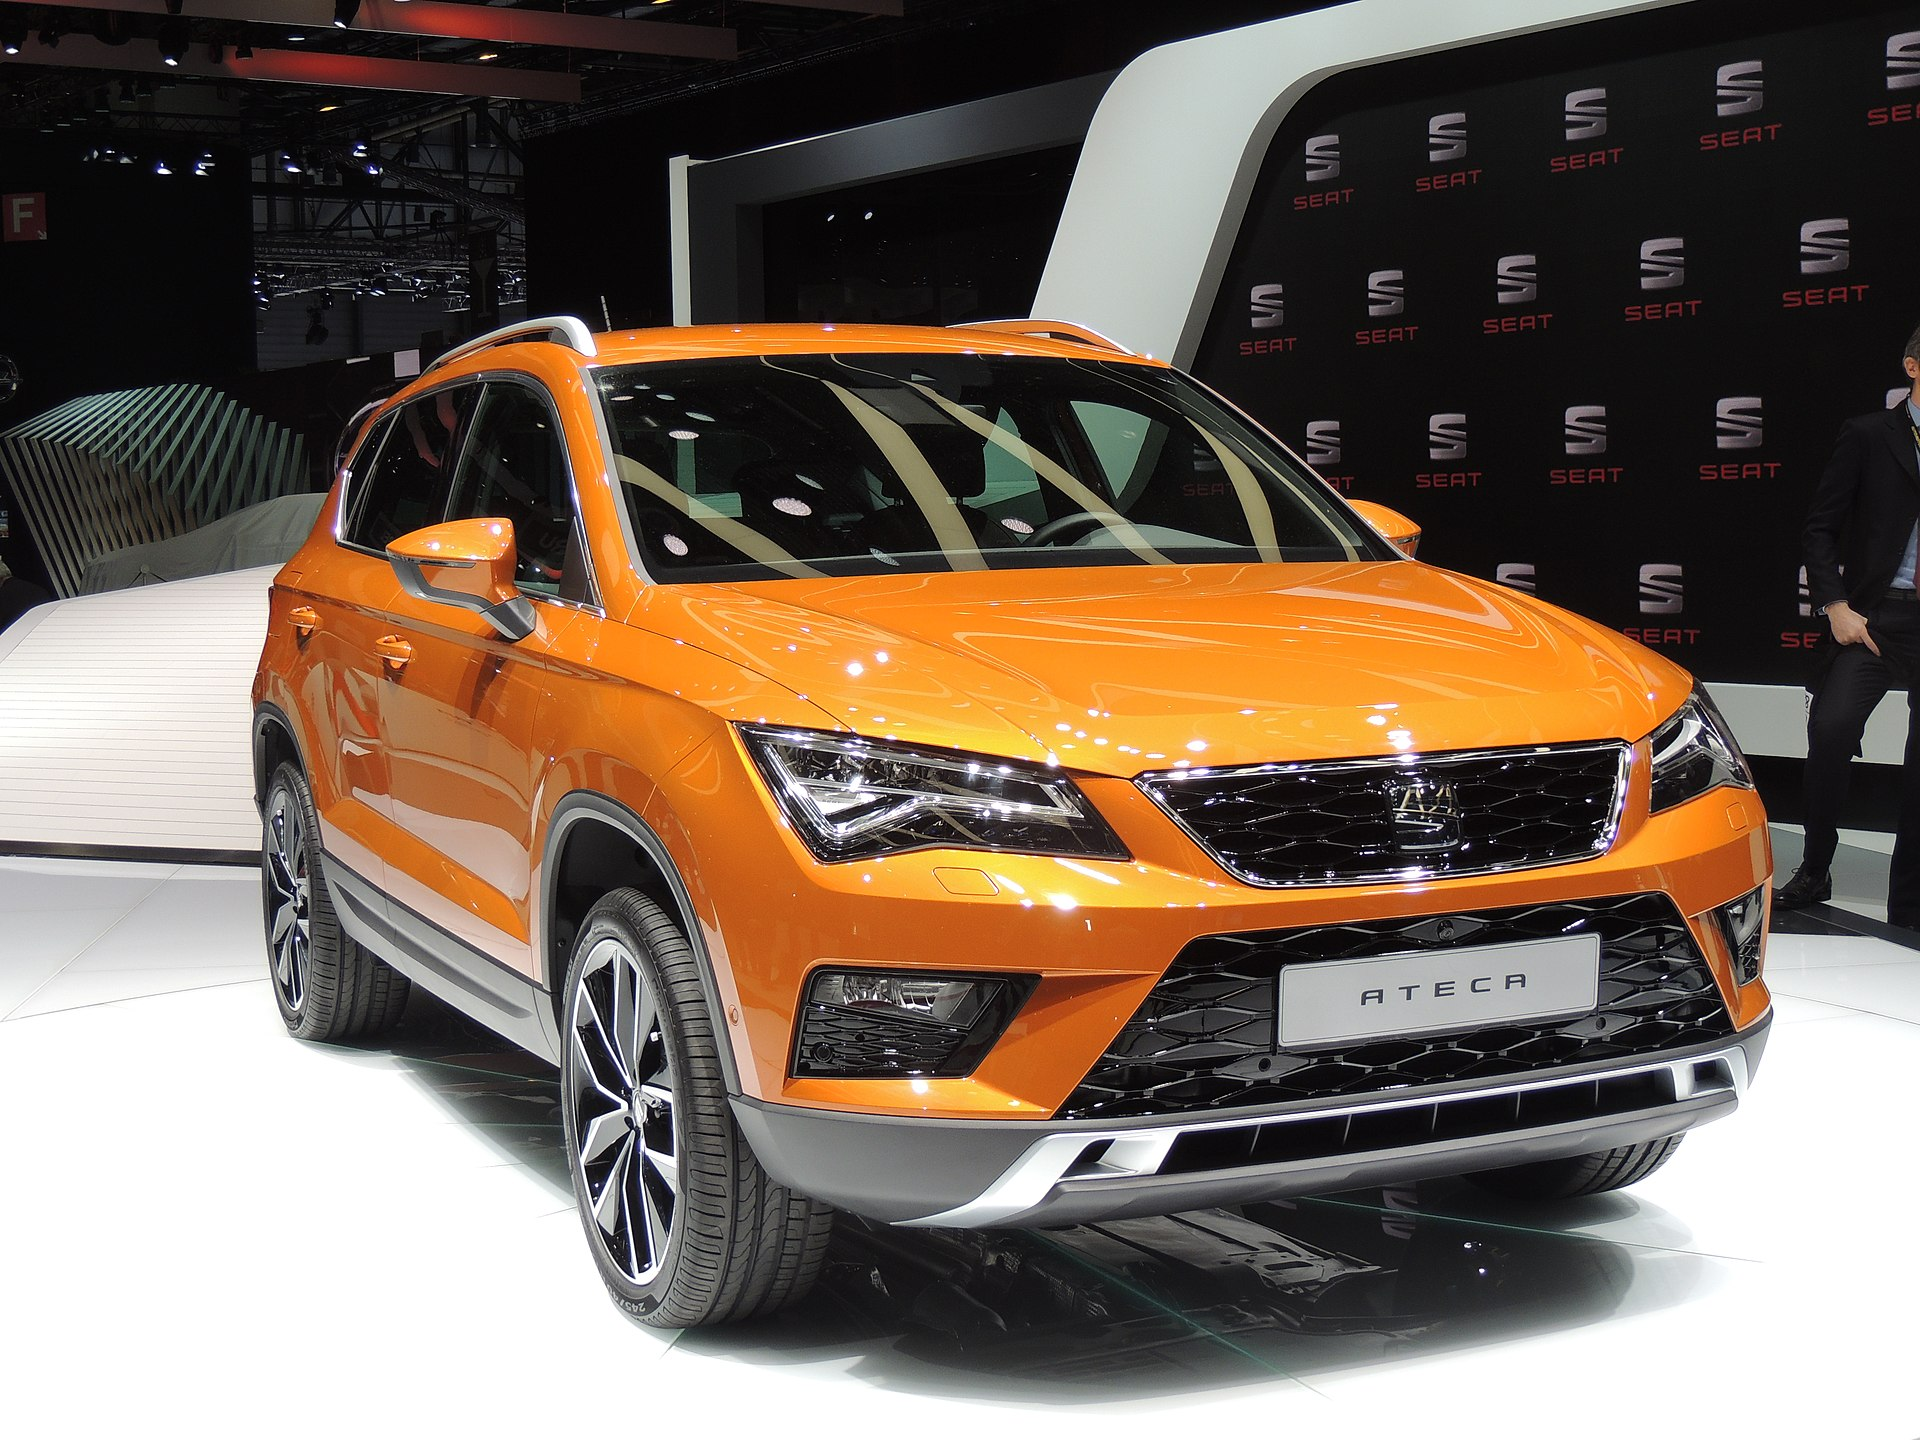 5 Door Car >> SEAT Ateca - Wikipedia